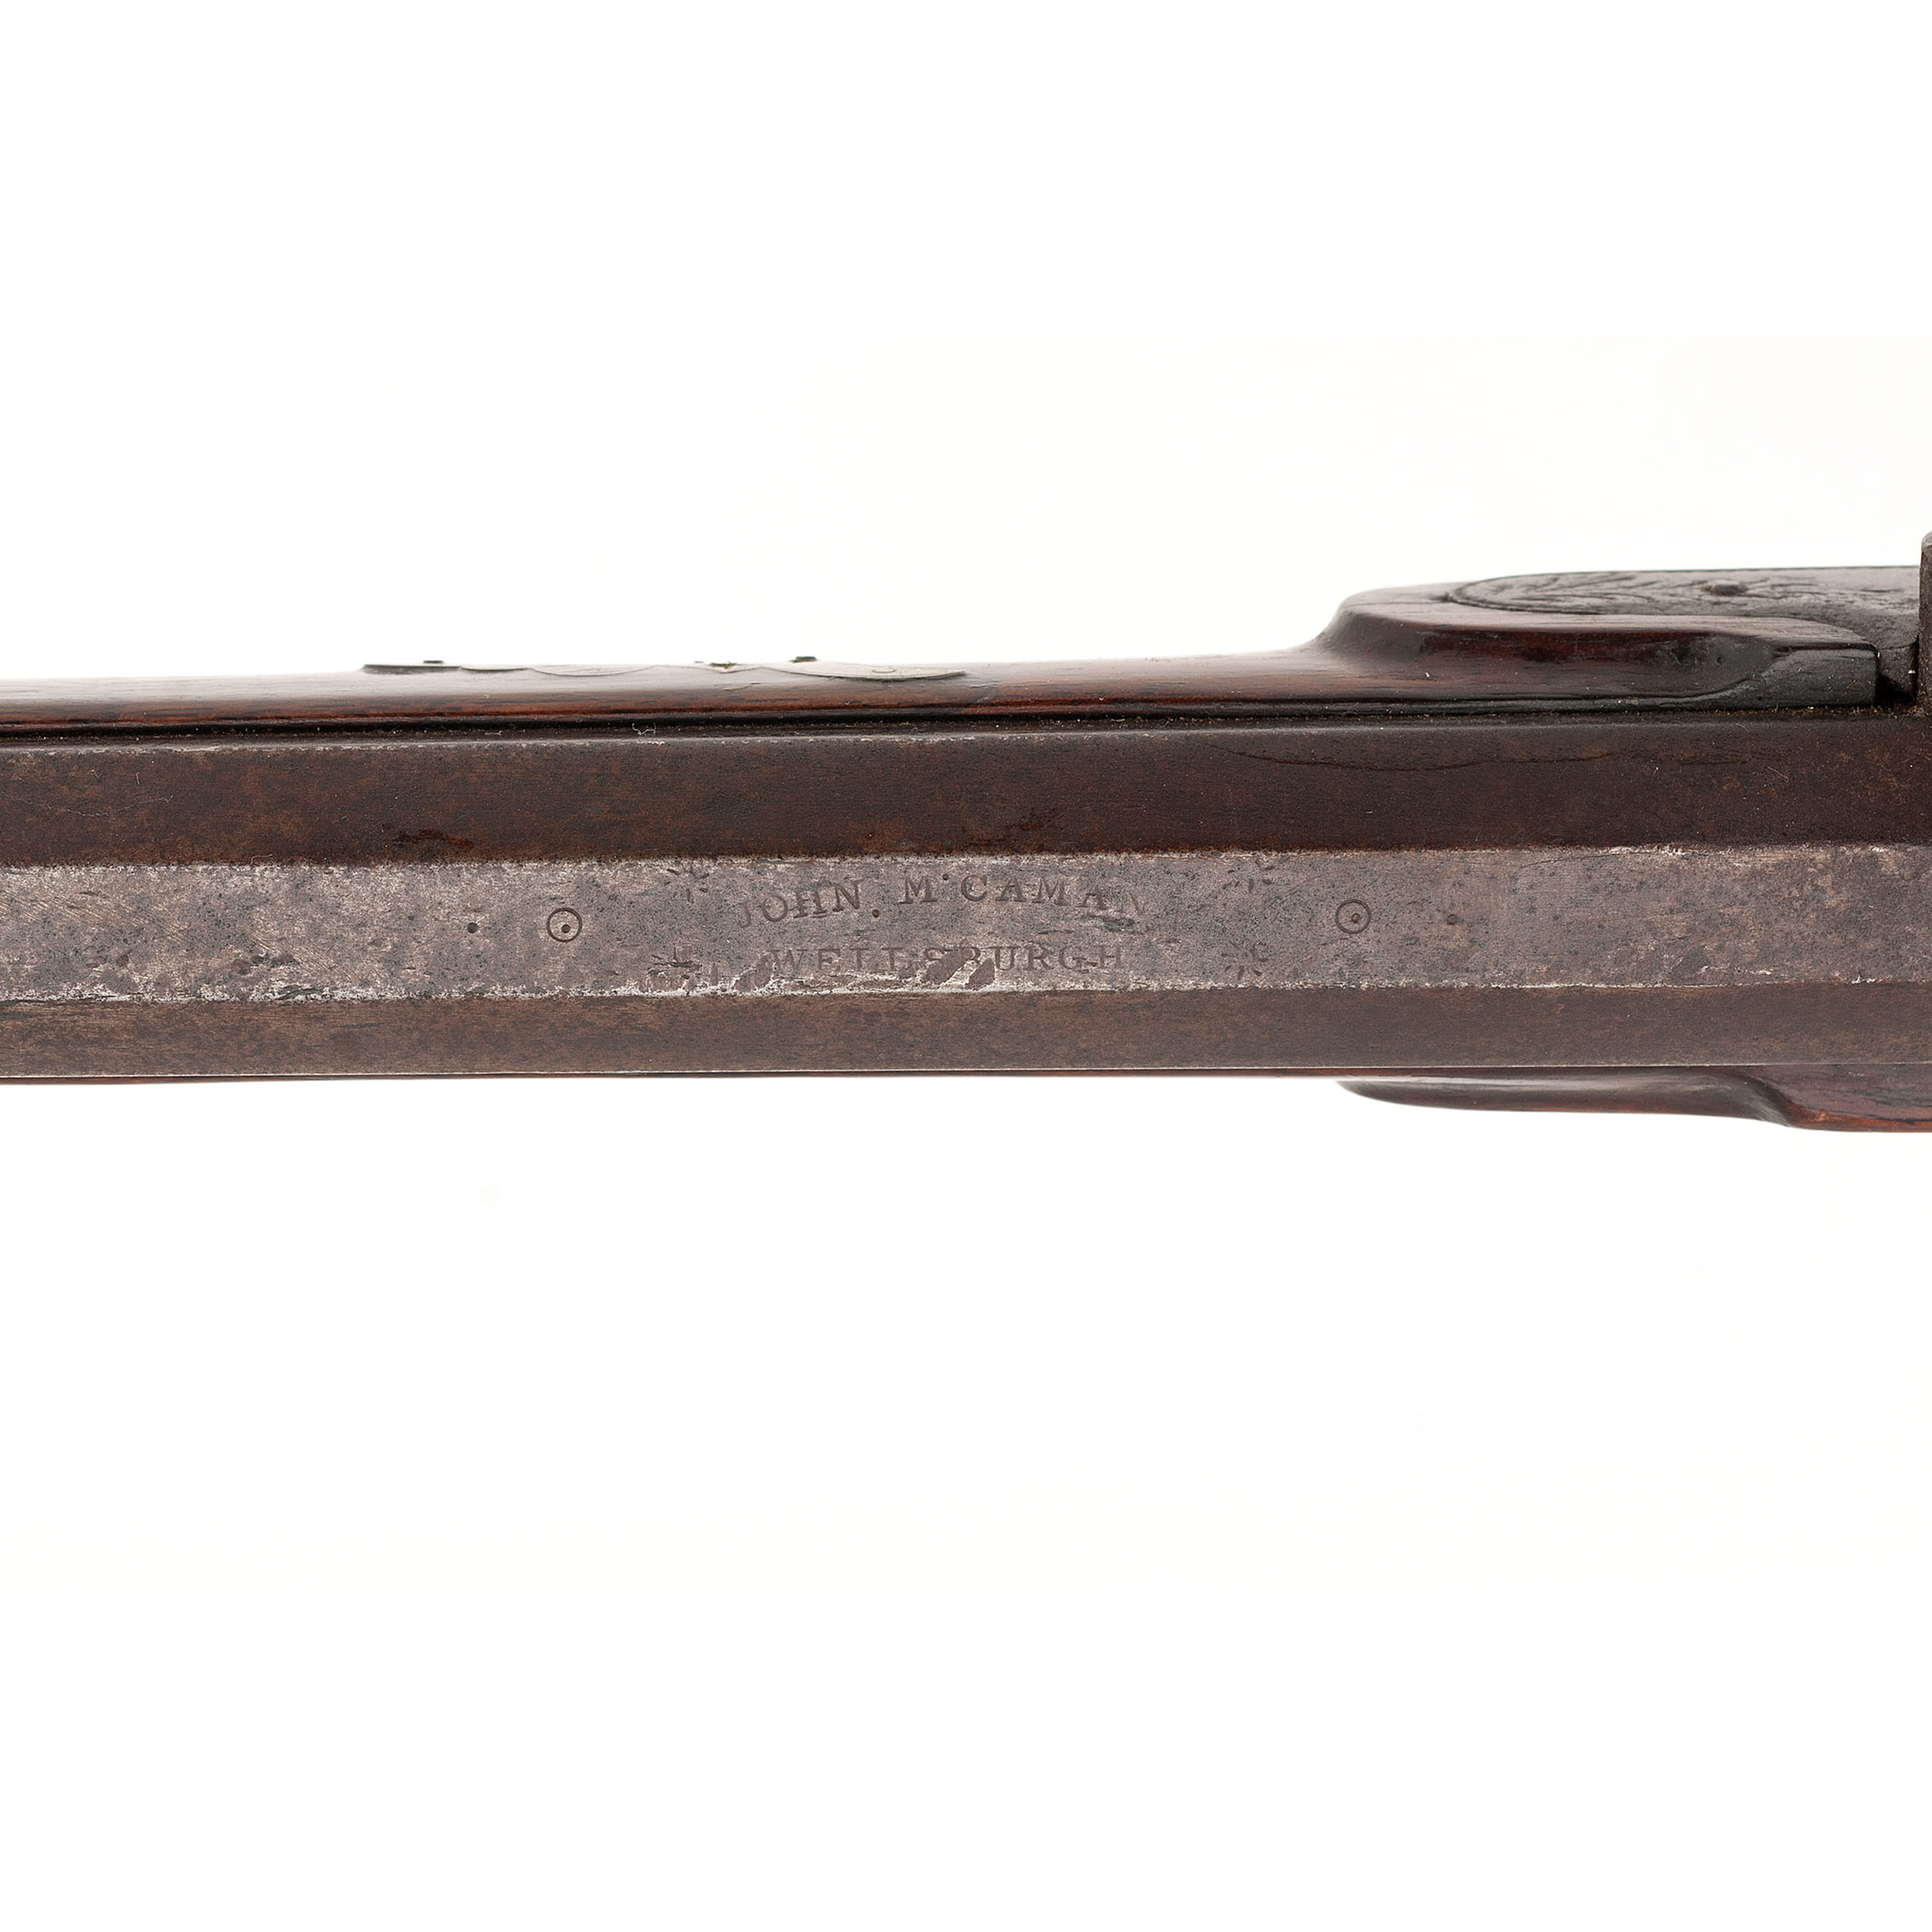 Half Stock Percussion Rifle Cowan S Auction House The